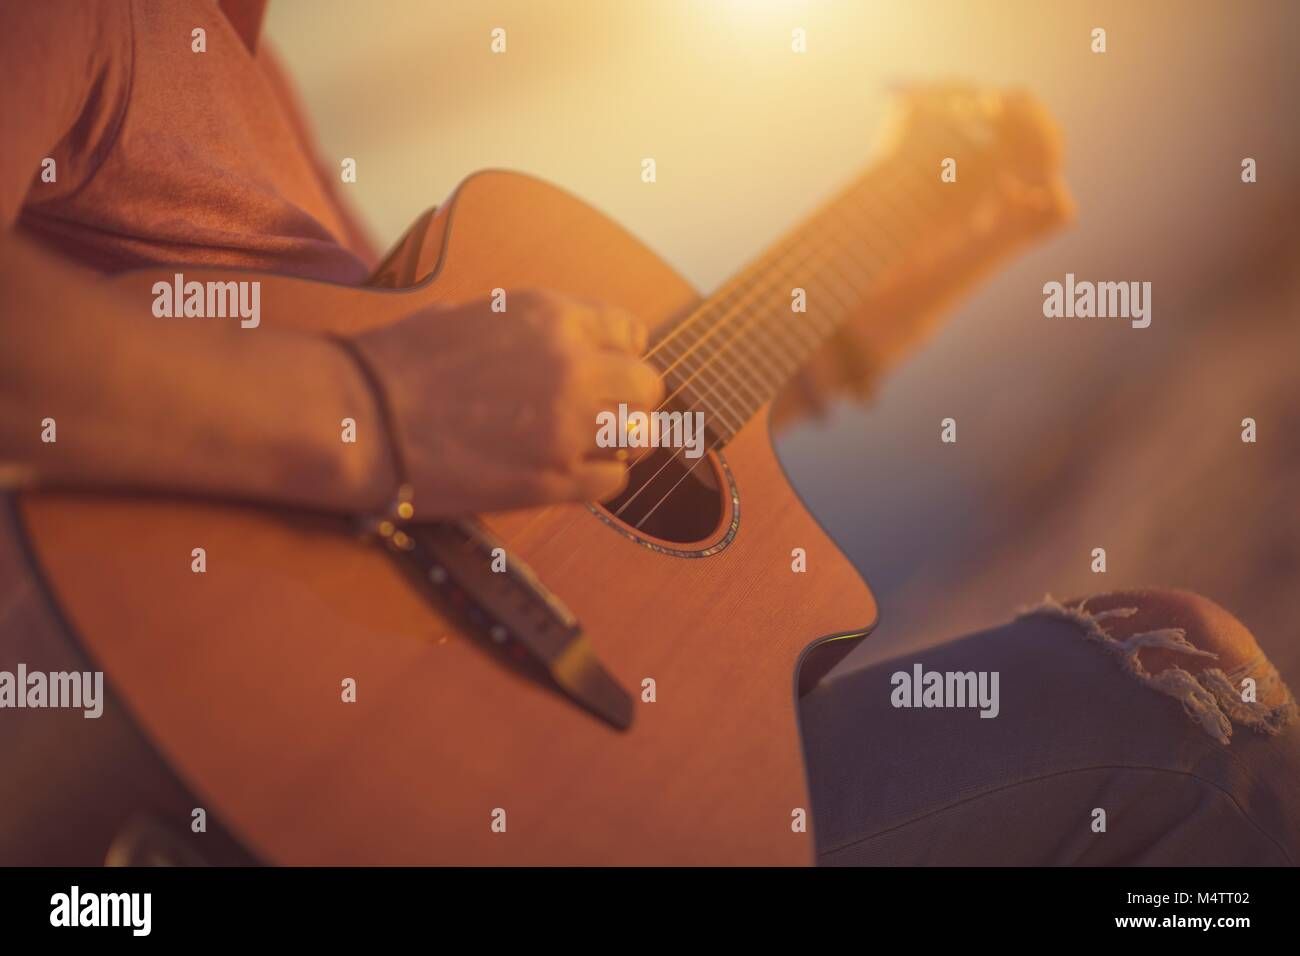 Caucasian Musician with Classic Acoustic Guitar. Guitar Ballad Playing - Stock Image